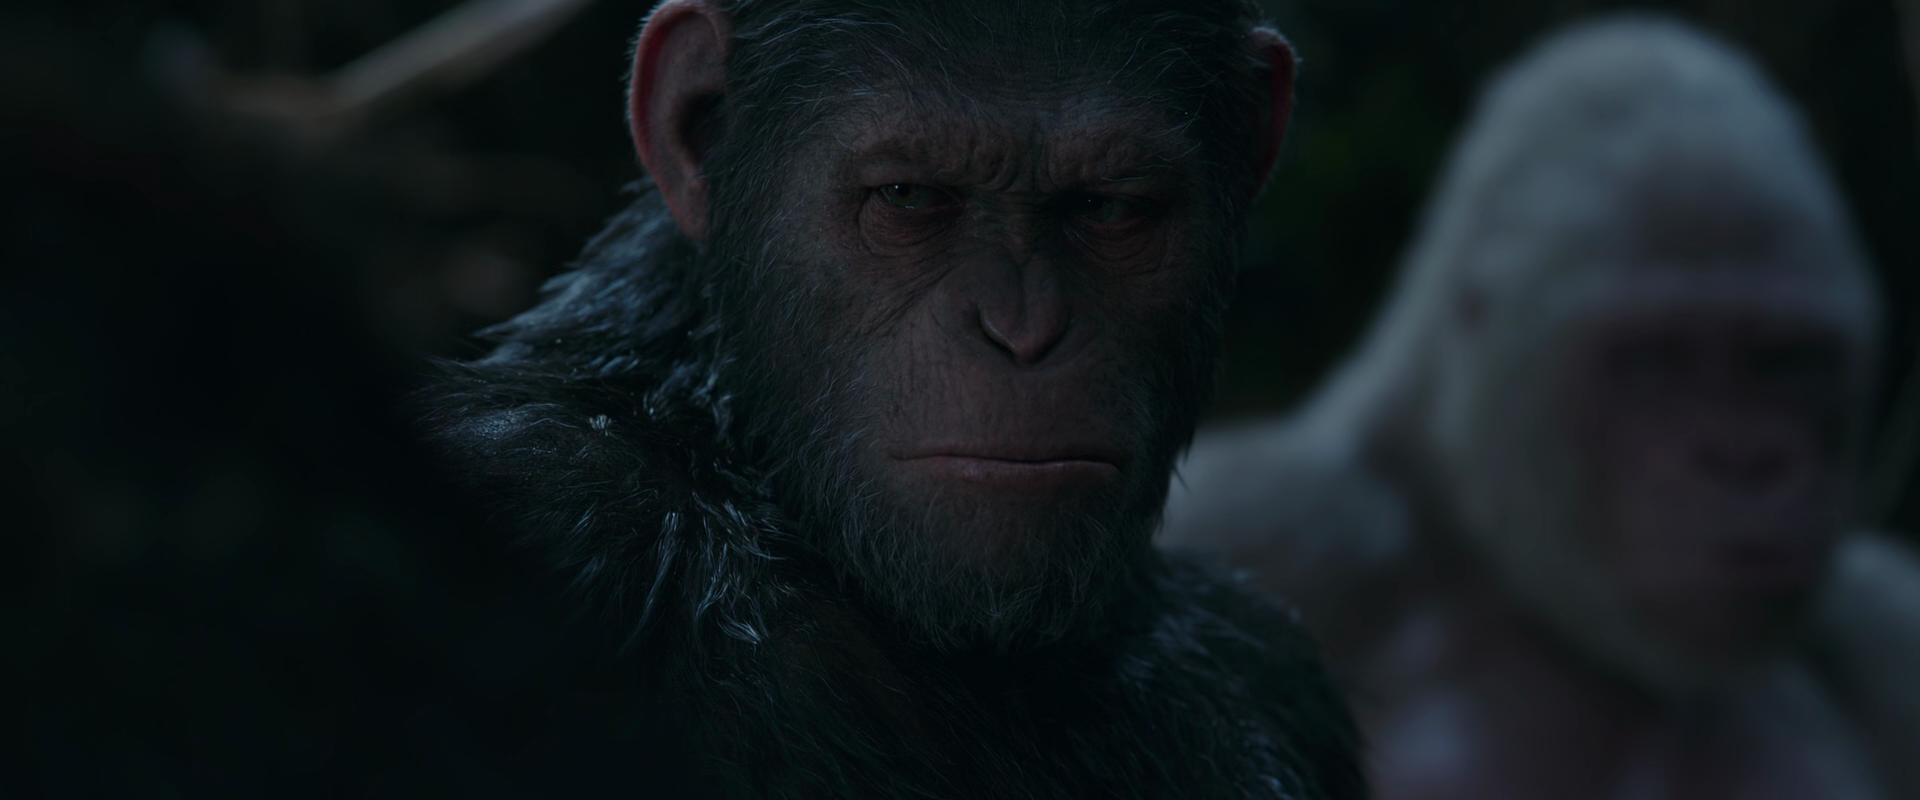 War for the Planet of the Apes 2017 1080p 10bit BluRay 5 1 x265 HEVC-MZABI